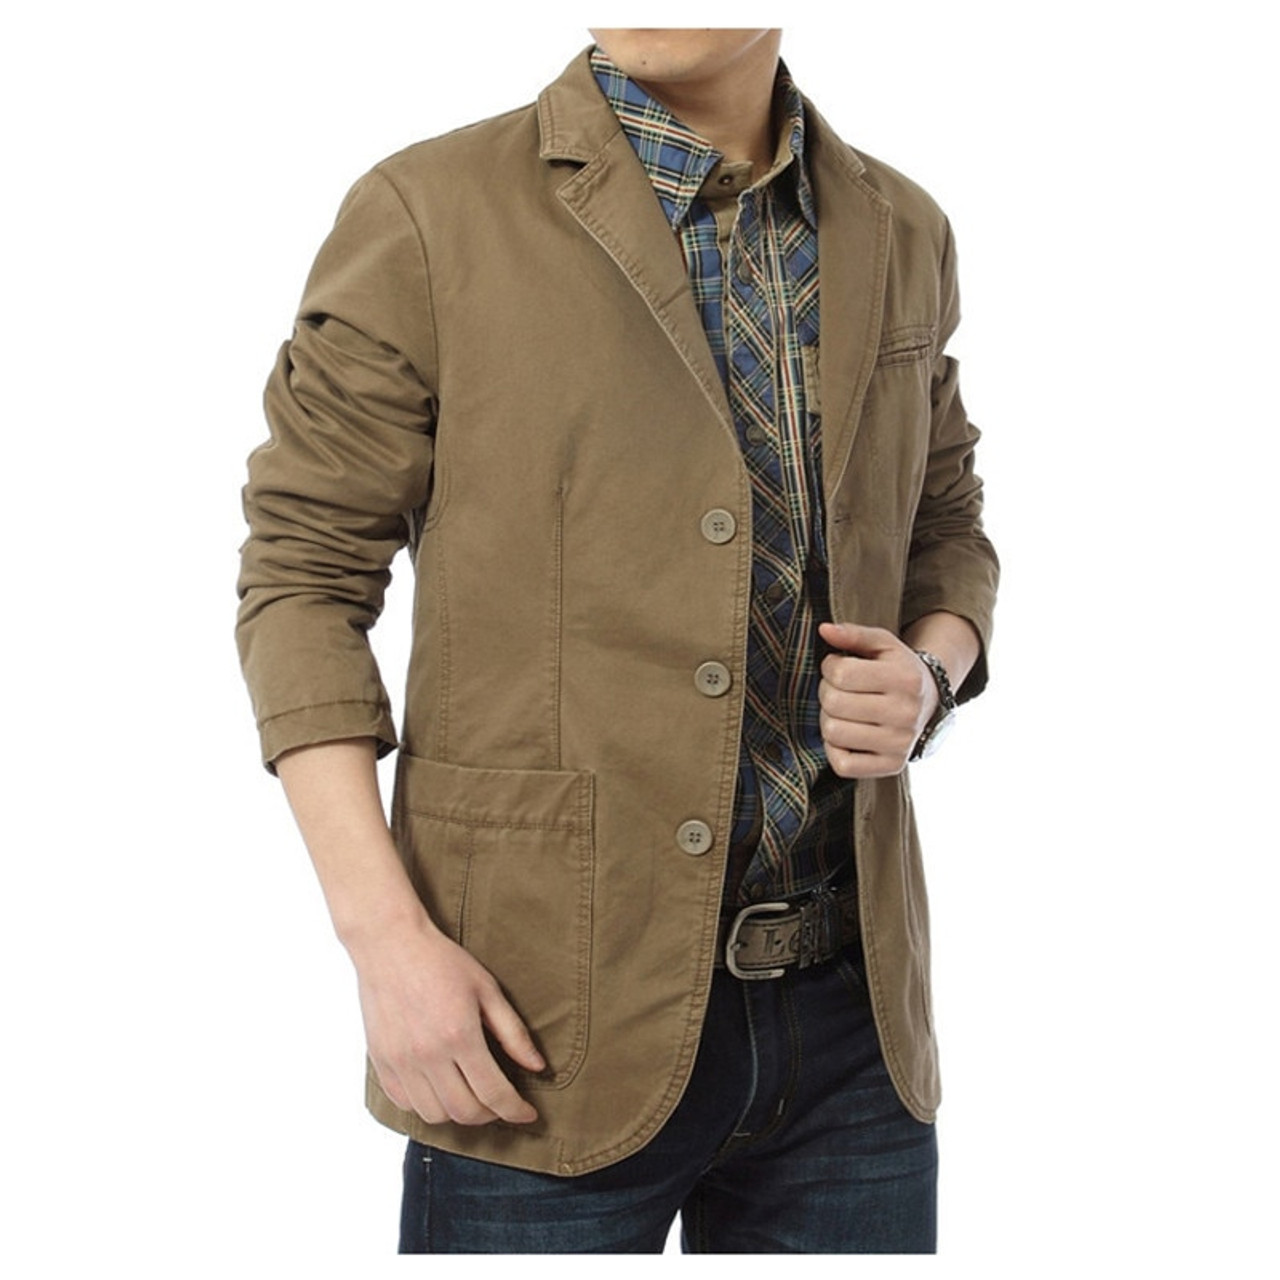 8d41042872ff5 NIANJEEP 2017 New Autumn Casual Blazers Men Cotton Deinm Casual Suits  Jackets Military Army Green Khaki ...